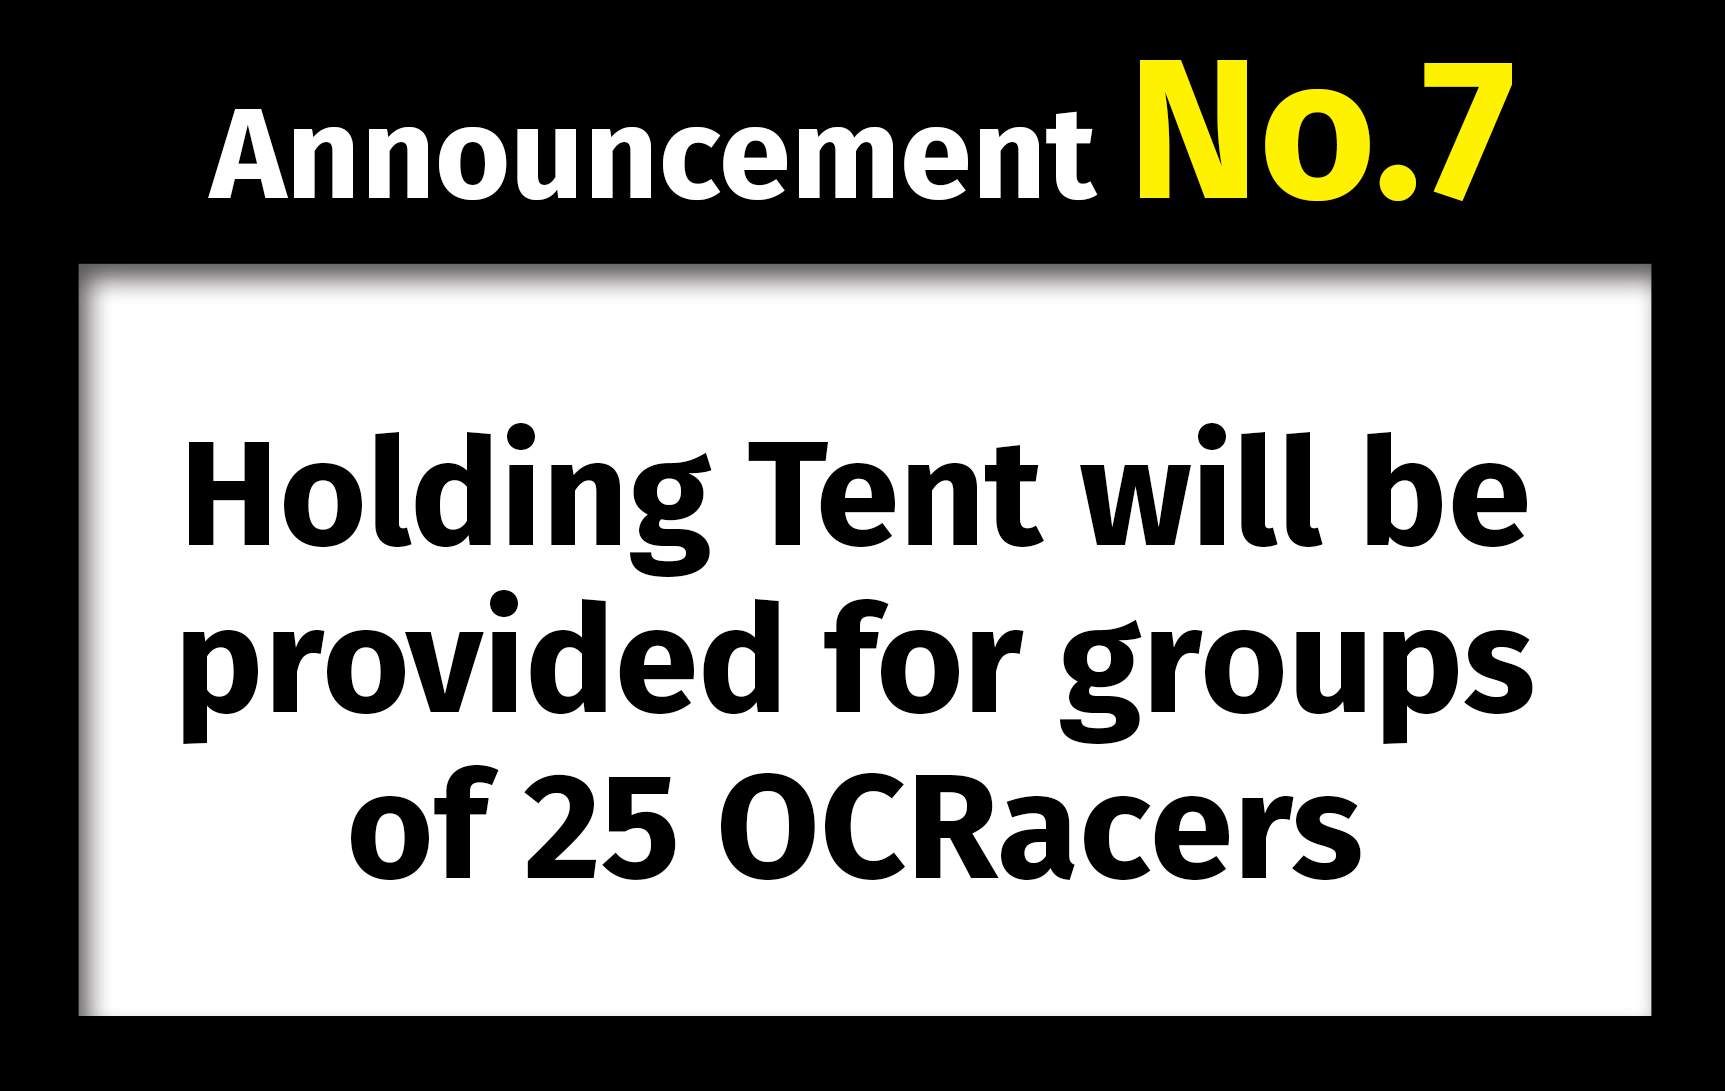 1st Asian OCR Championships. Announcement No.7